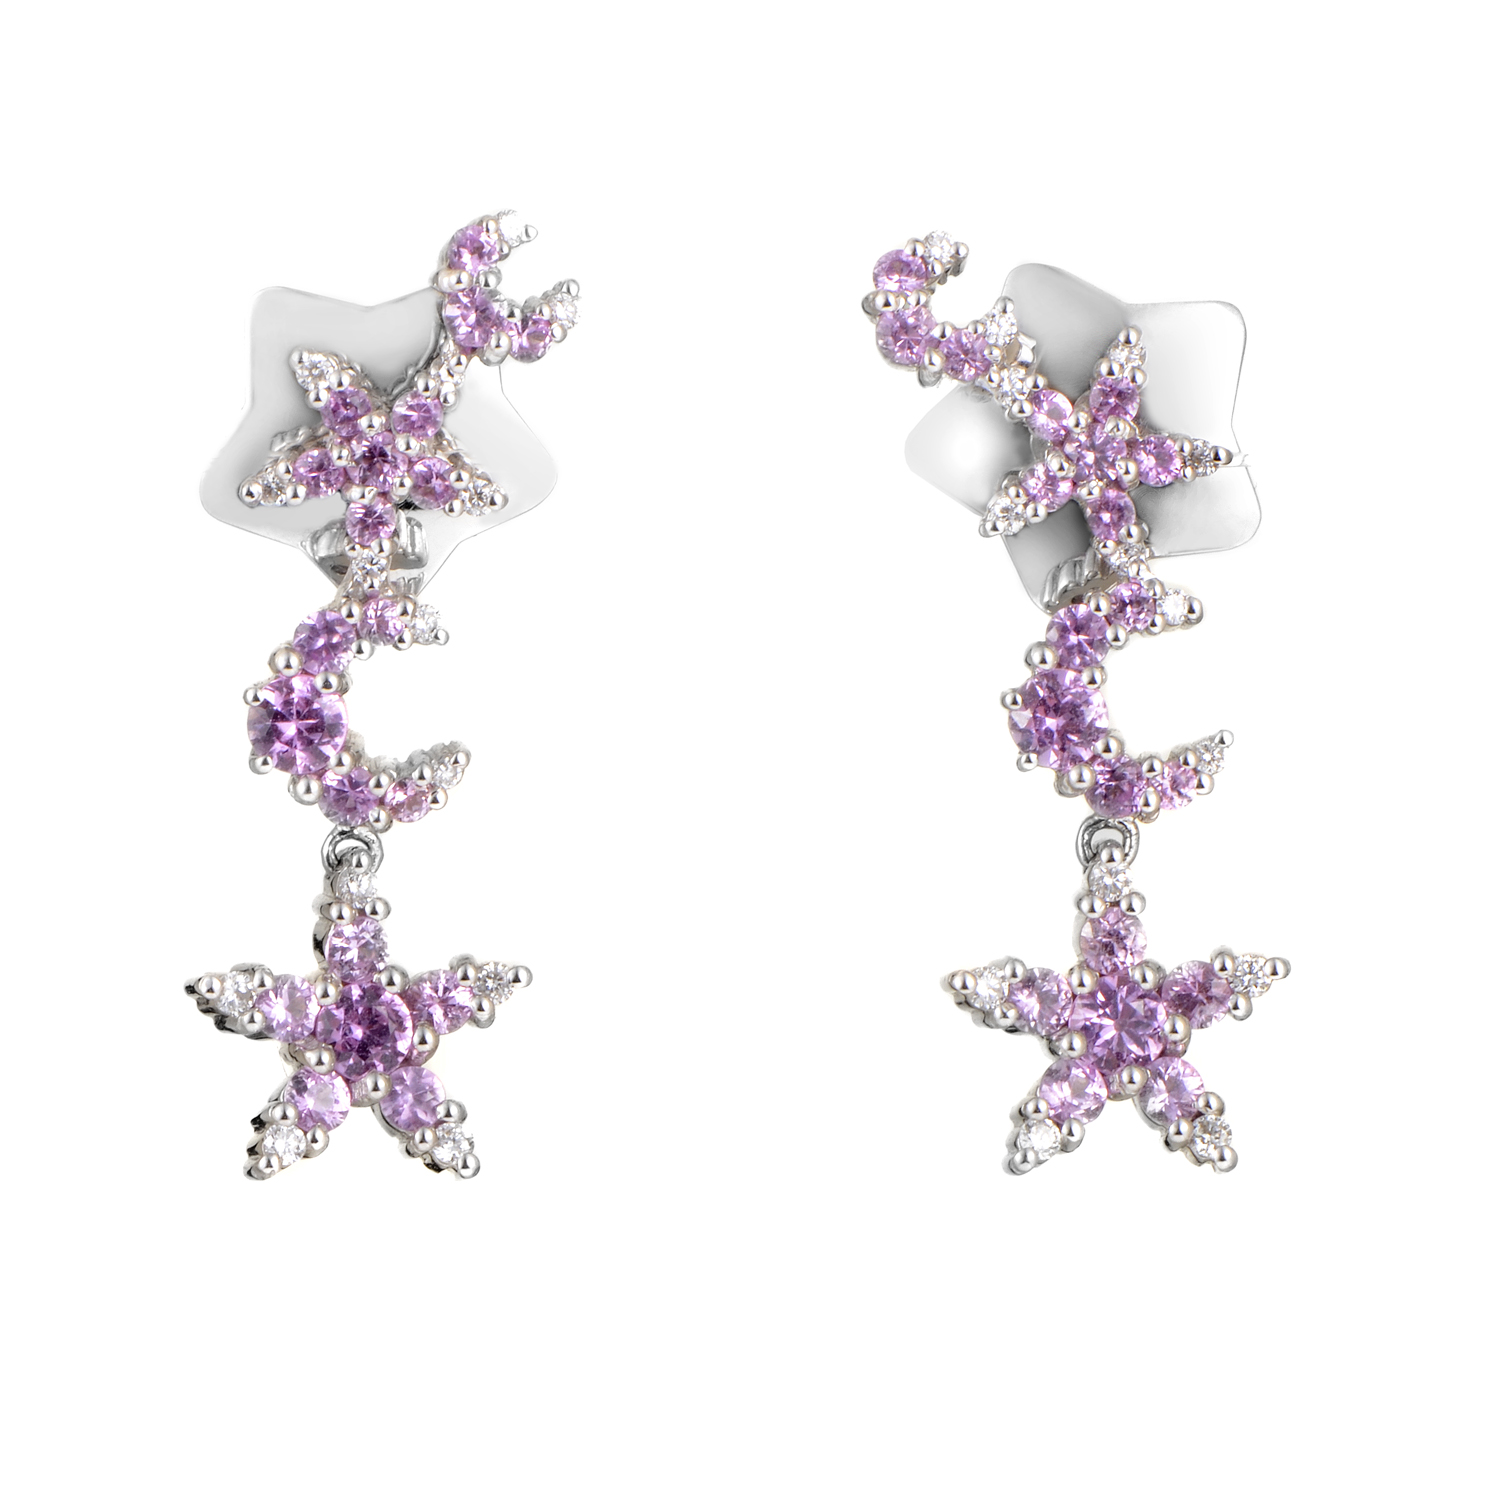 Incanto 18K White Gold Diamond & Pink Sapphire Dangle Earrings